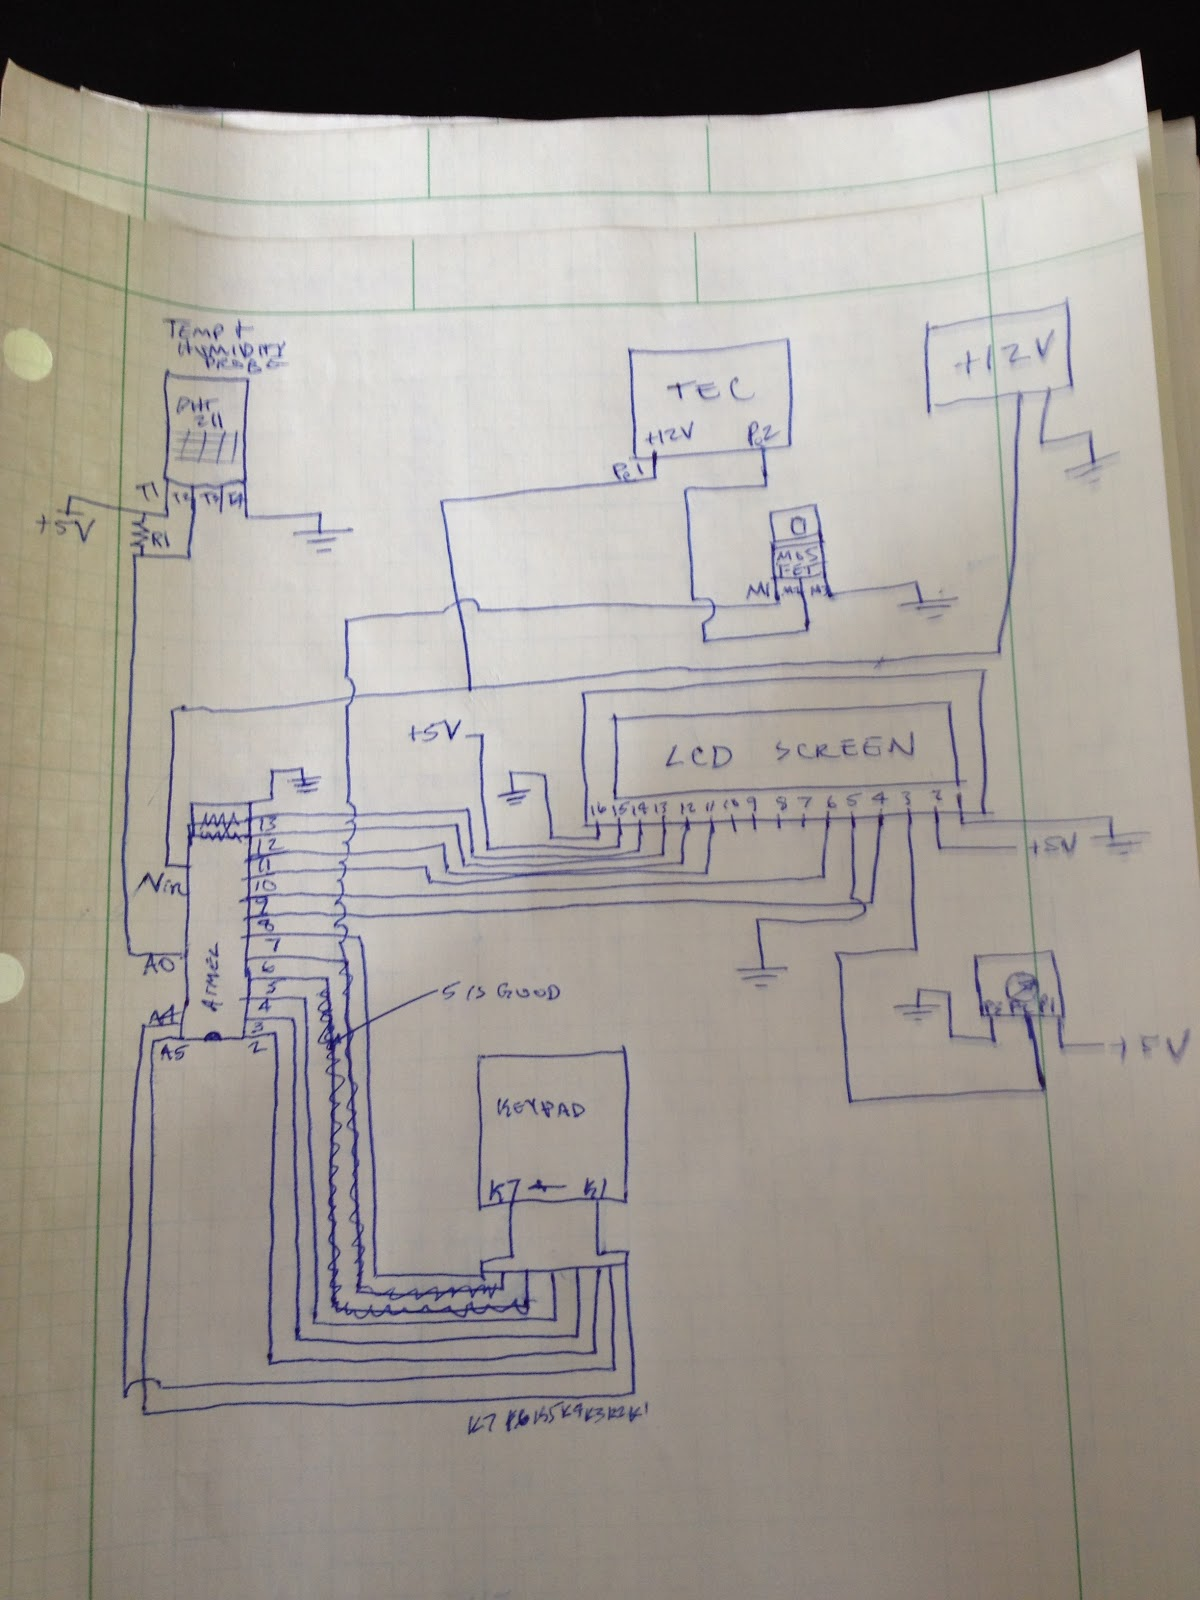 True Cooler Wiring Diagrams on true cooler parts, walk-in cooler refrigeration diagrams, commercial cooler wiring diagrams, true t-49f freezer wiring schematic, true freezer compressor wiring,